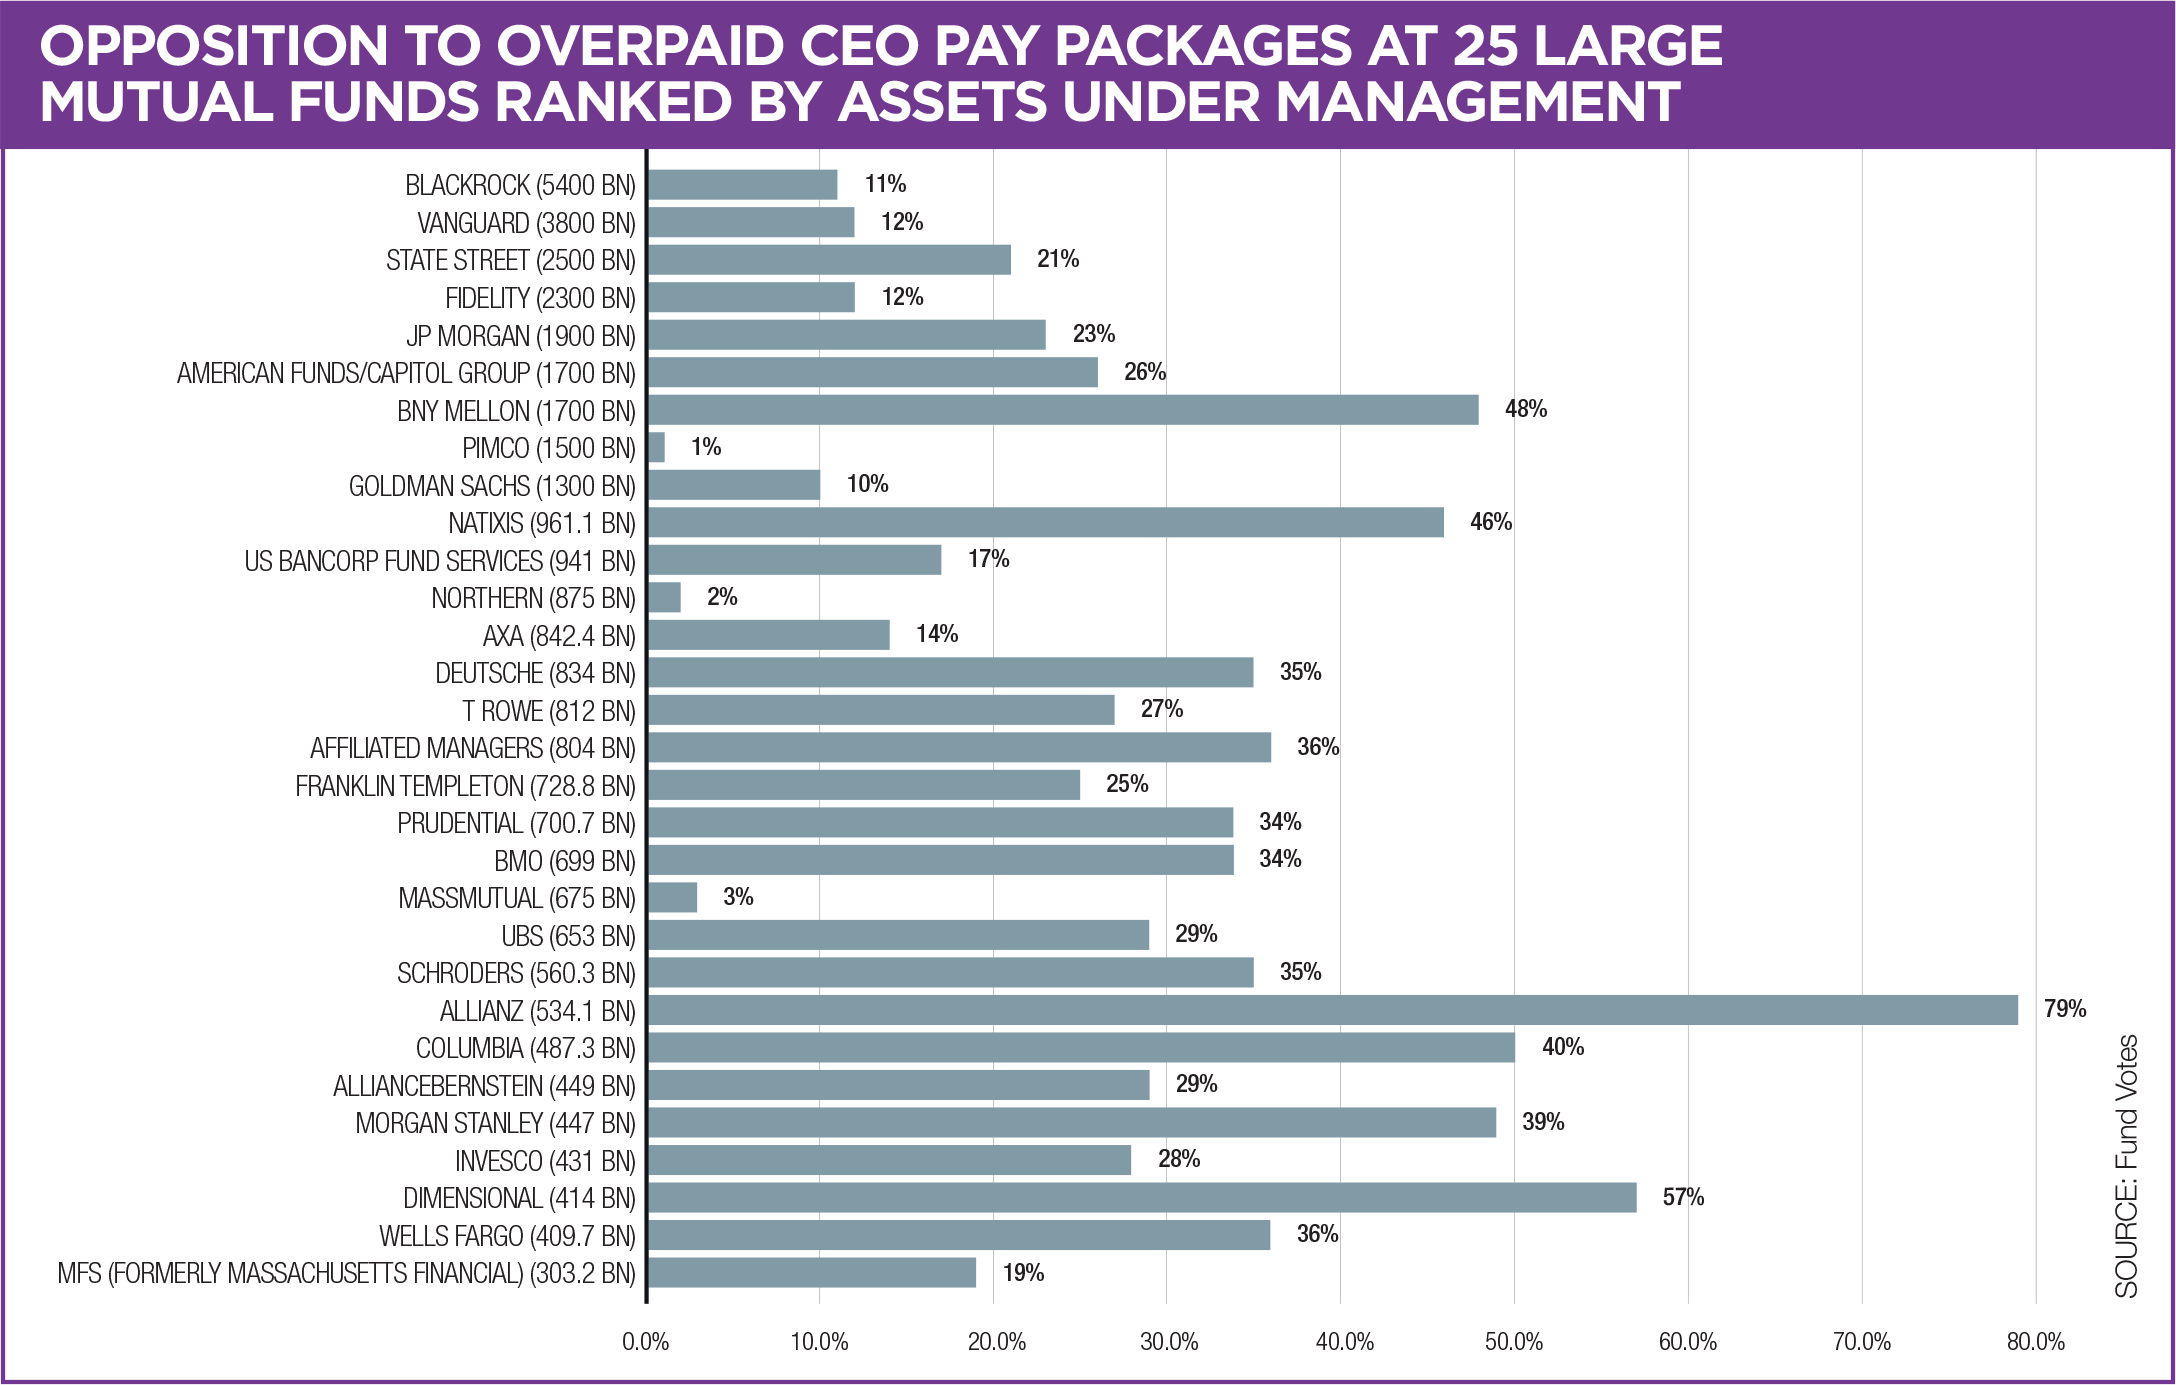 Figure 2 – Opposition to Overpaid CEO Pay Packages at 25 Large Mutual Funds Ranked by Assets Under Management   Vote data provided by Fund Votes. Assets Under Management (AUM) are from Proxy Insight, and taken from most recent data in ADV forms filed at the SEC